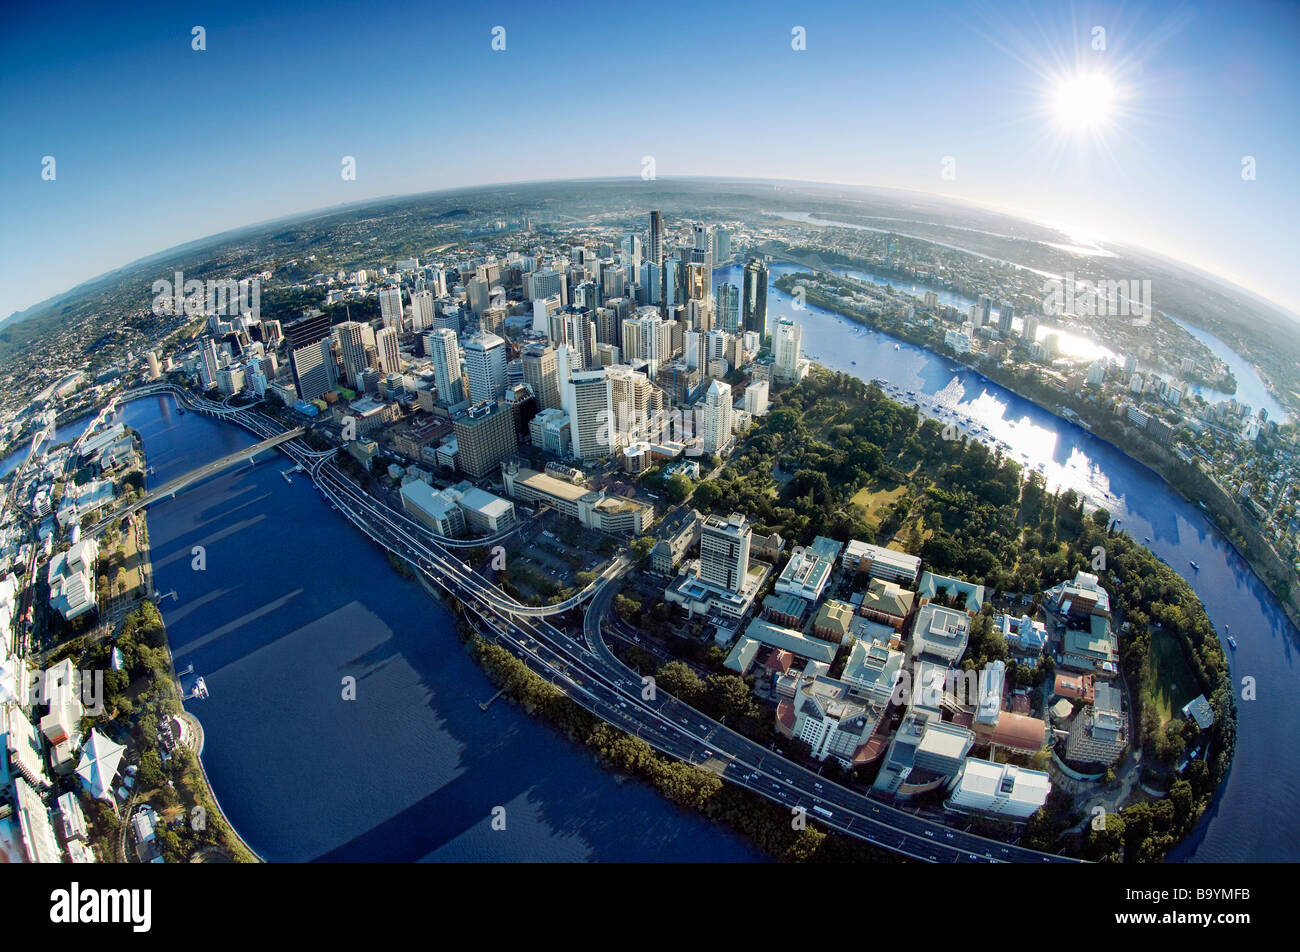 Brisbane city fisheye aerai view - Stock Image